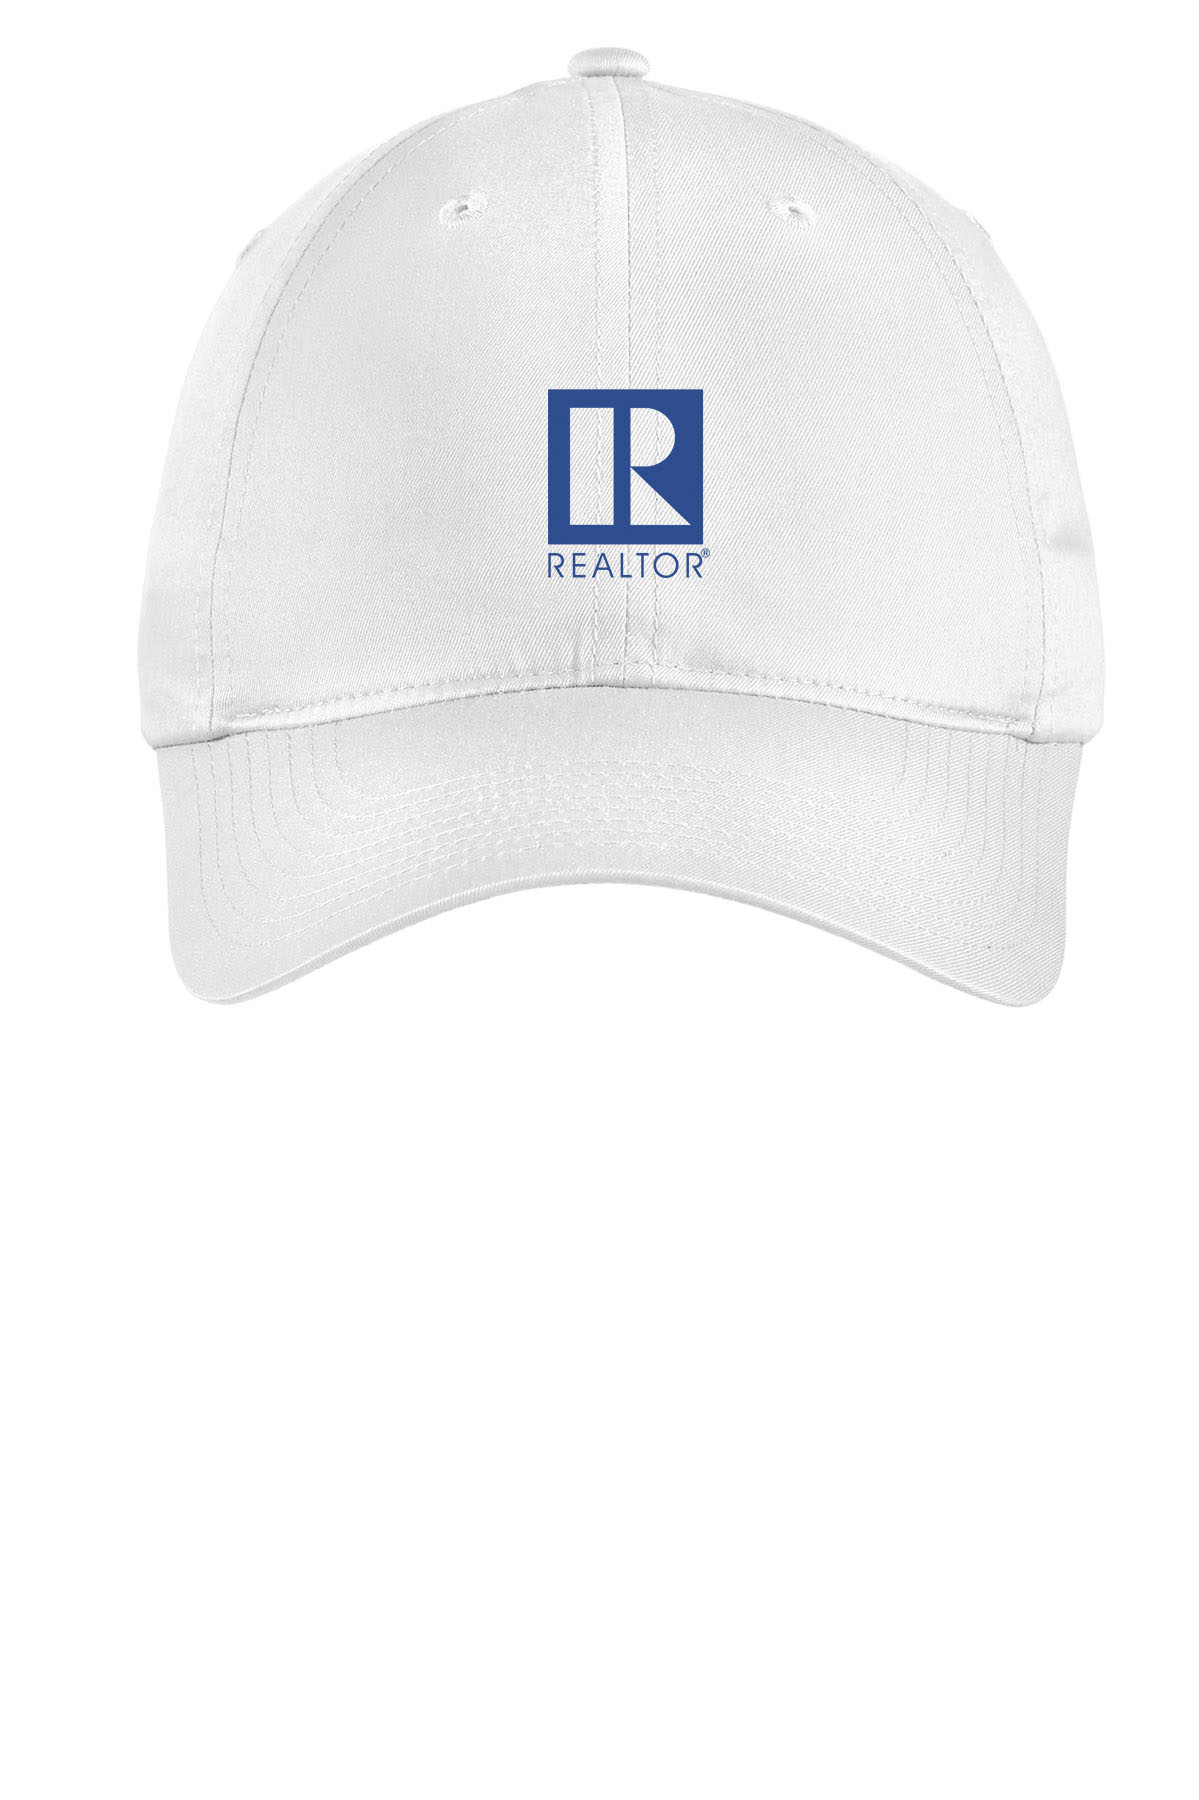 79a06d76174 Nike Golf - Dri-FIT Swoosh Perforated Cap - RCG3200 ...